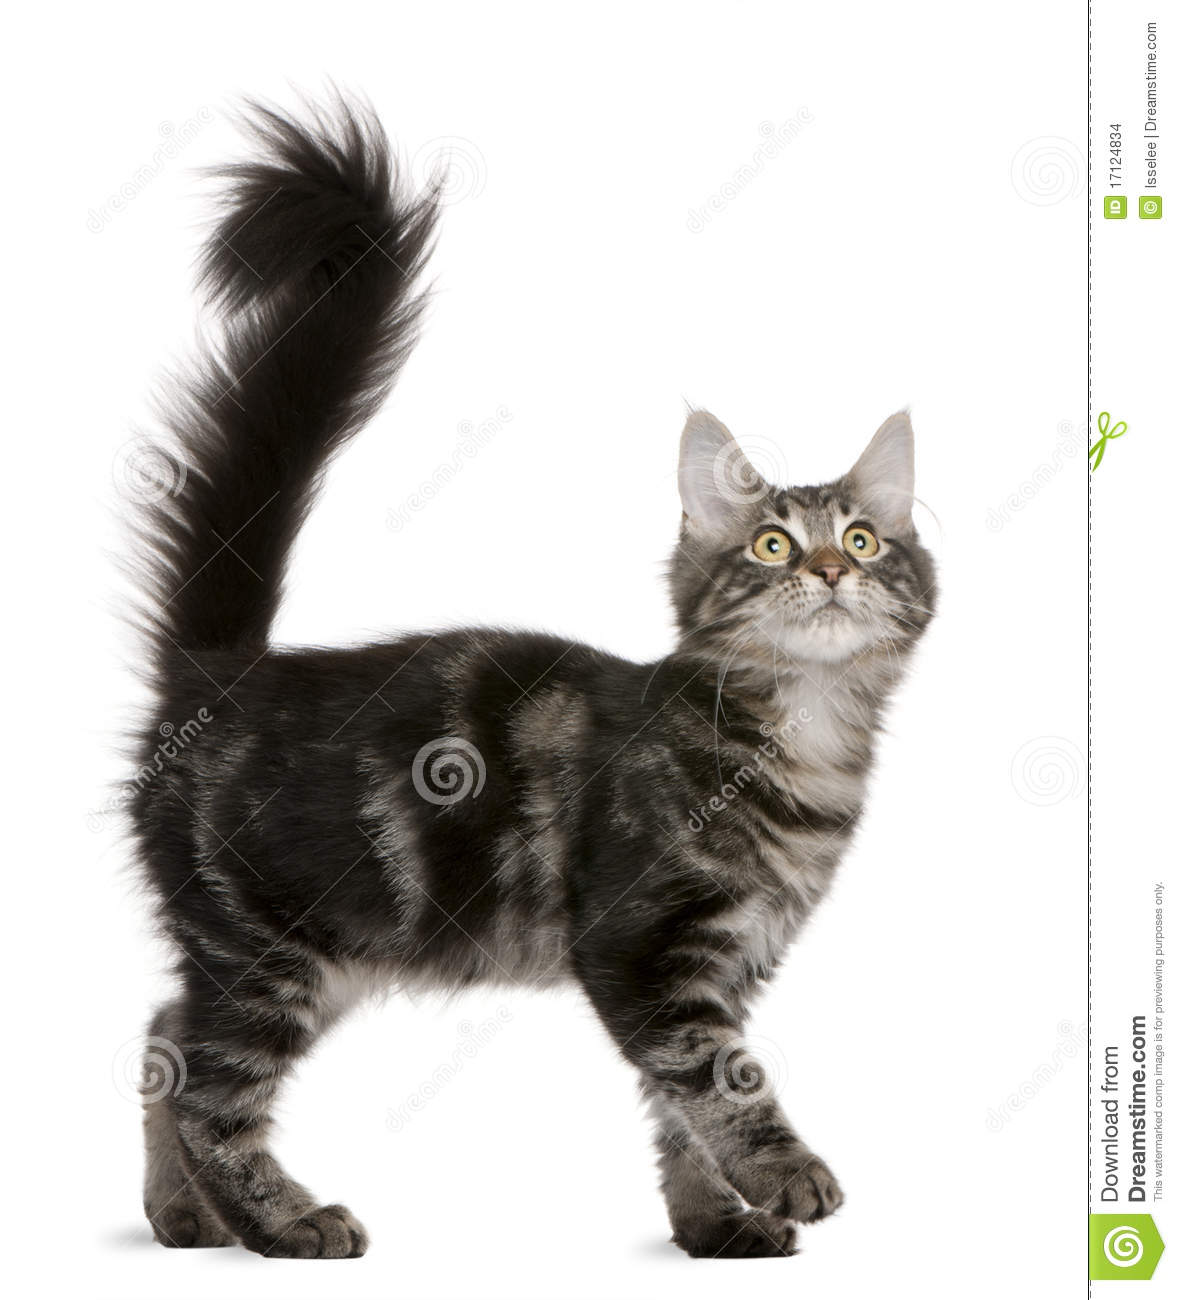 cat with knife pointed at it